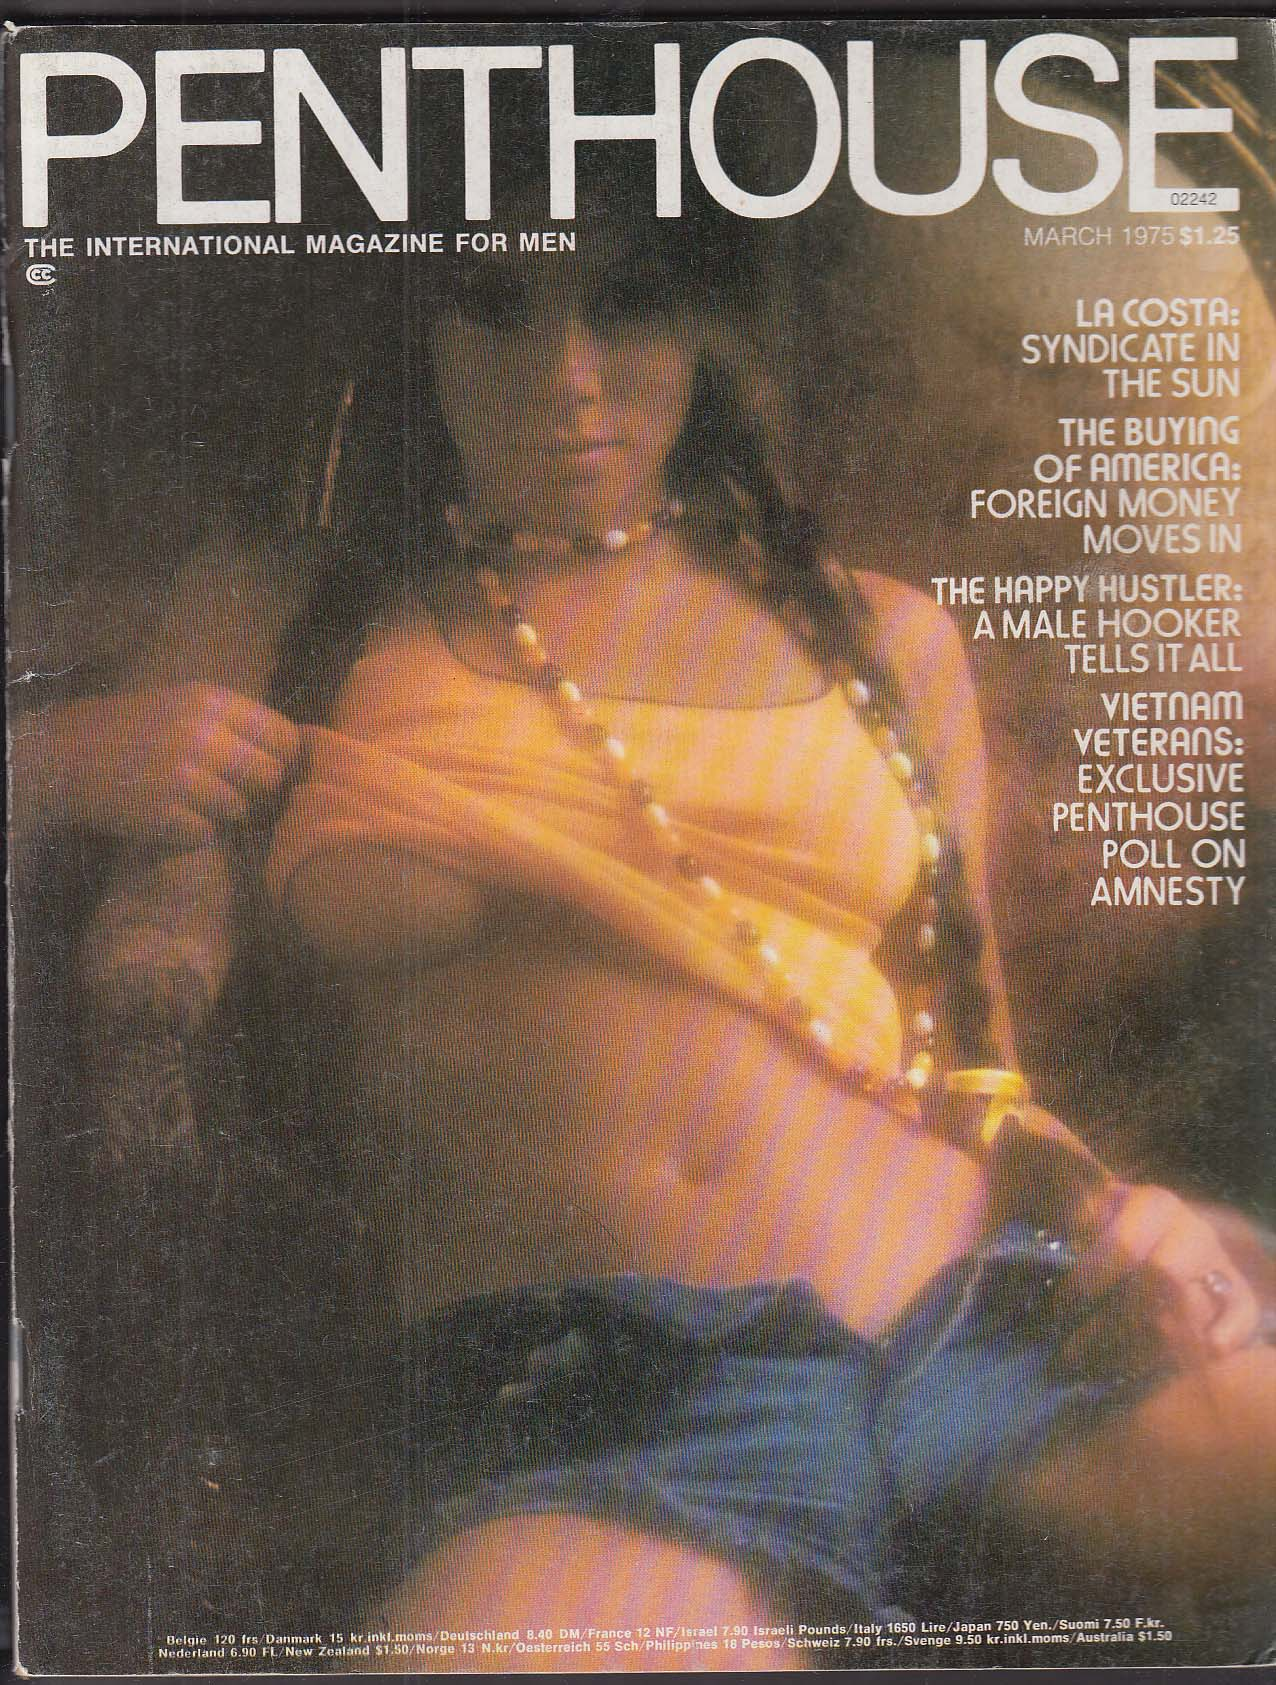 Image for PENTHOUSE Studs Terkel interview; La Costa; Vietnam Vets Amnesty Poll etc 3 1975